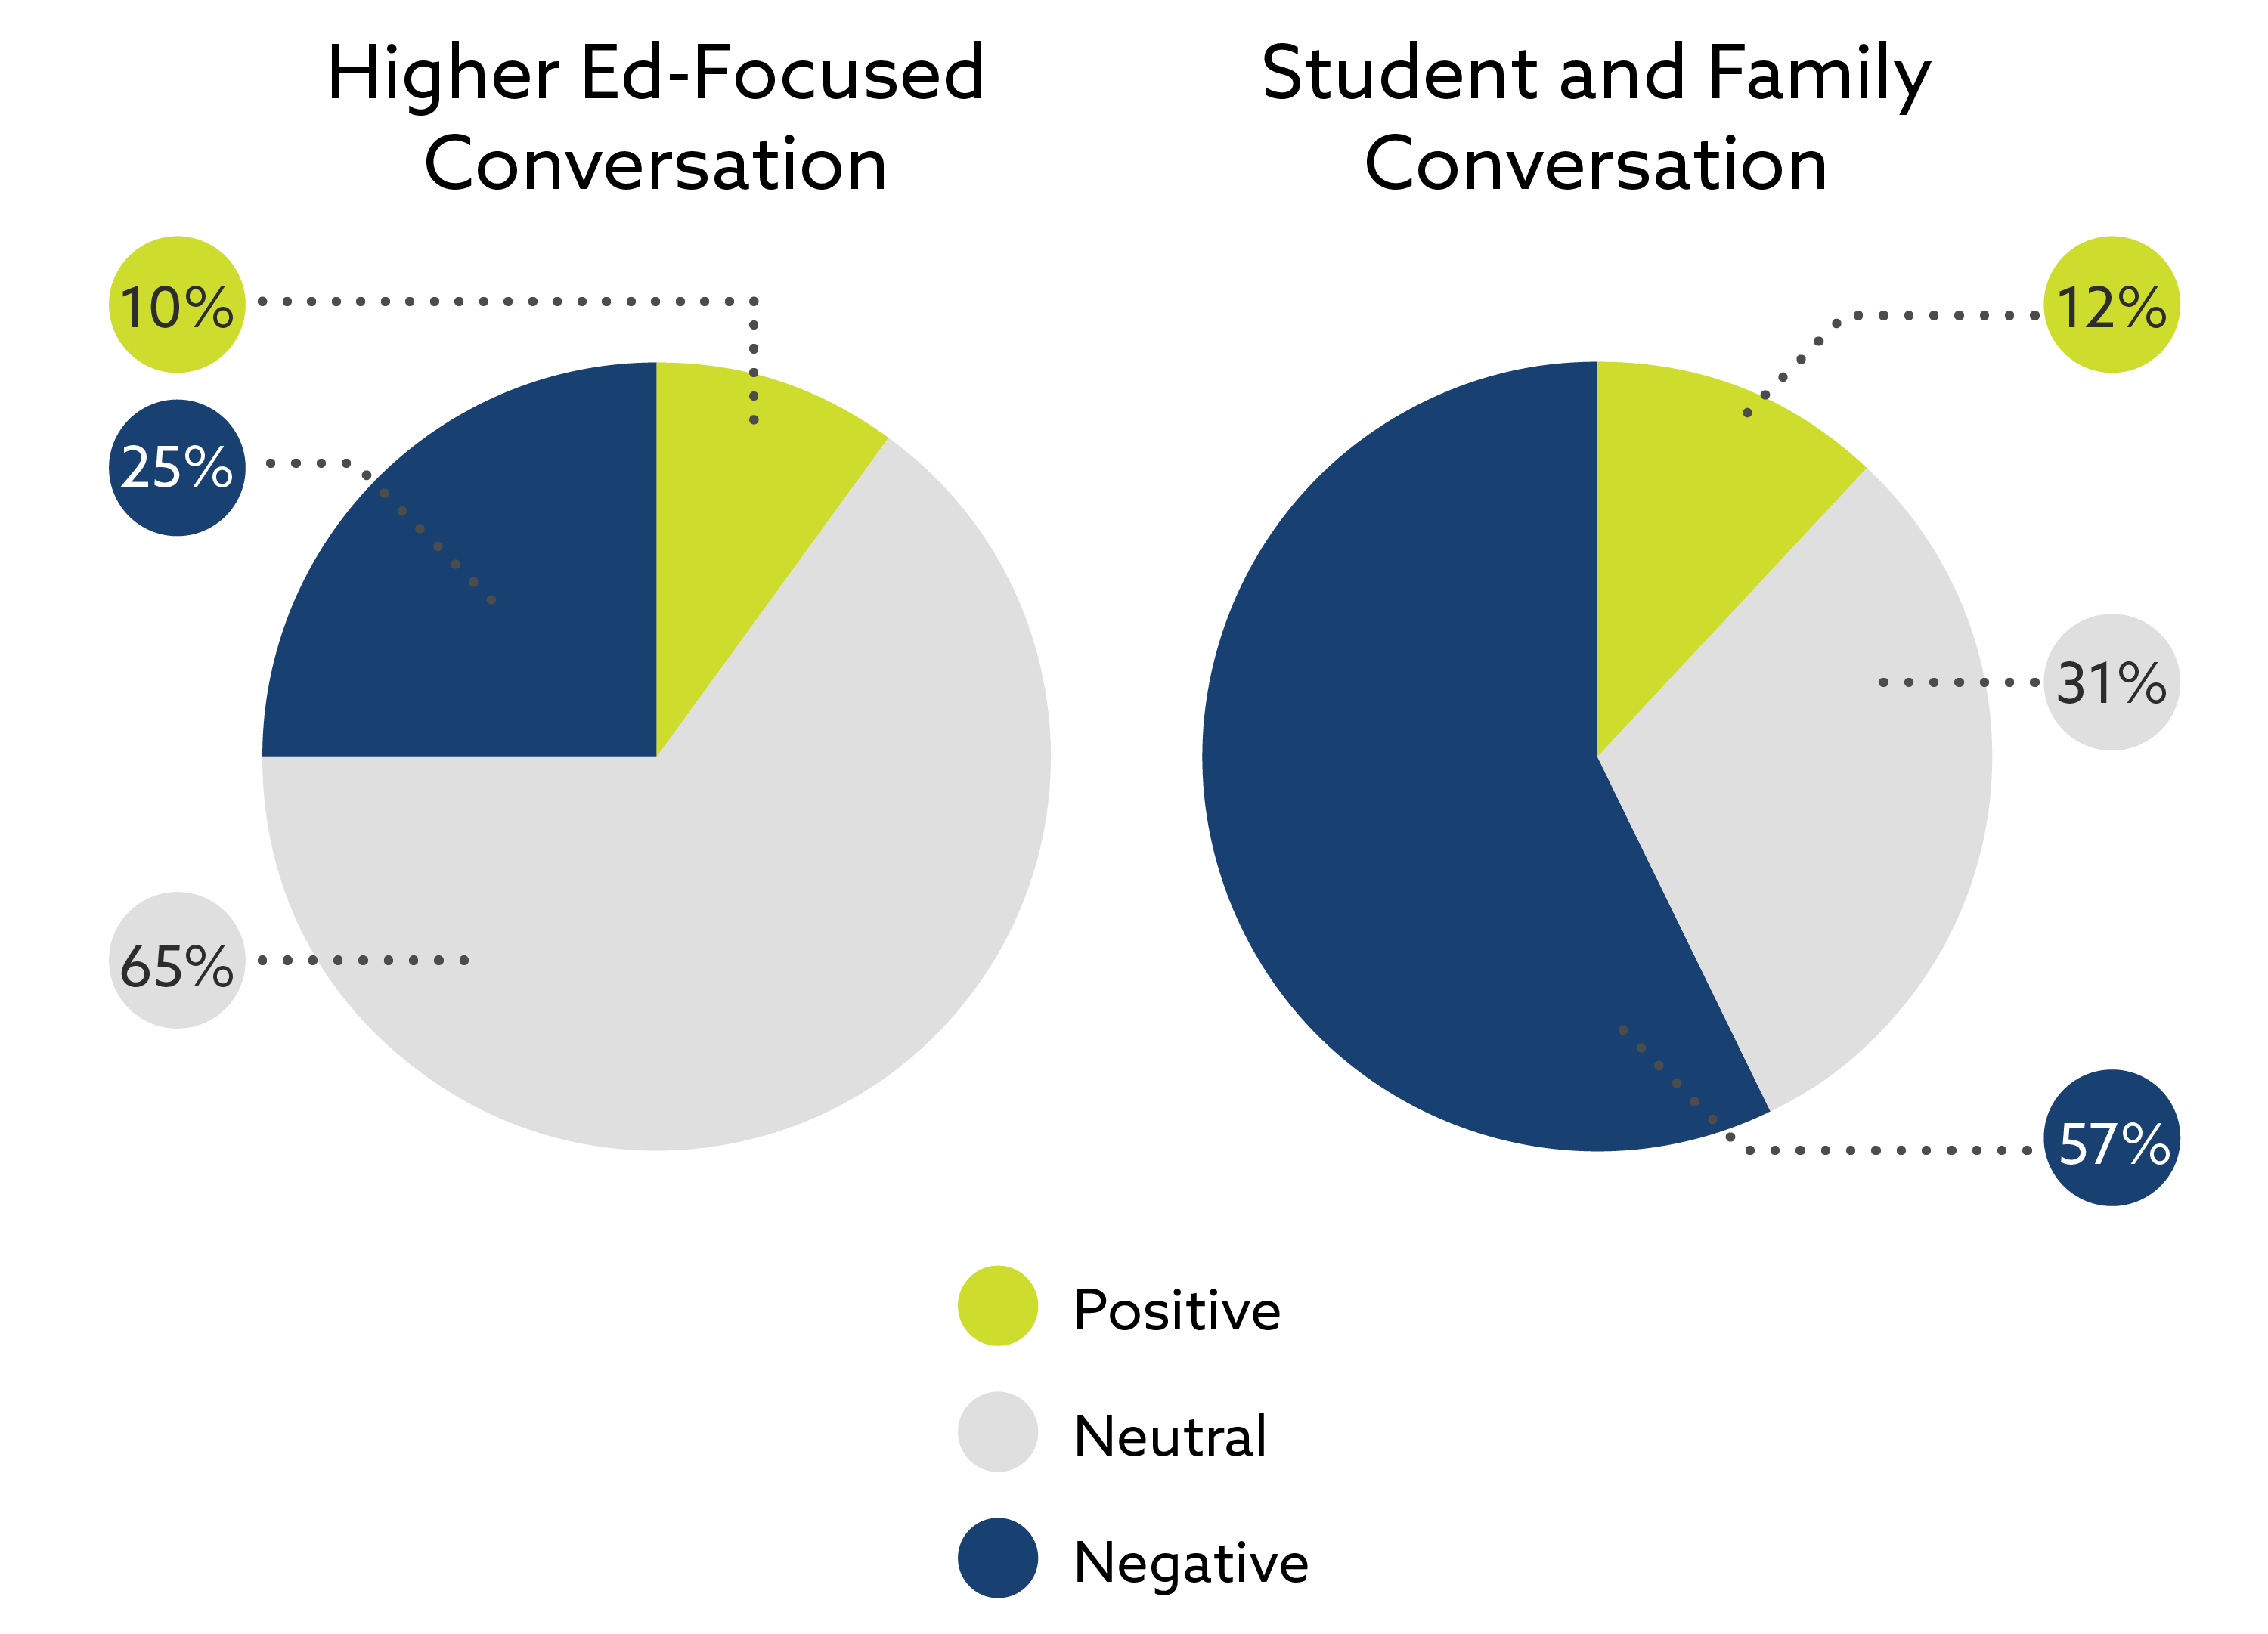 Comparison between higher ed-focused conversation with 10% positive, 25% negative and 65% neutral with student and family conversation with 12% positive, 57% negative, and 31% neutral